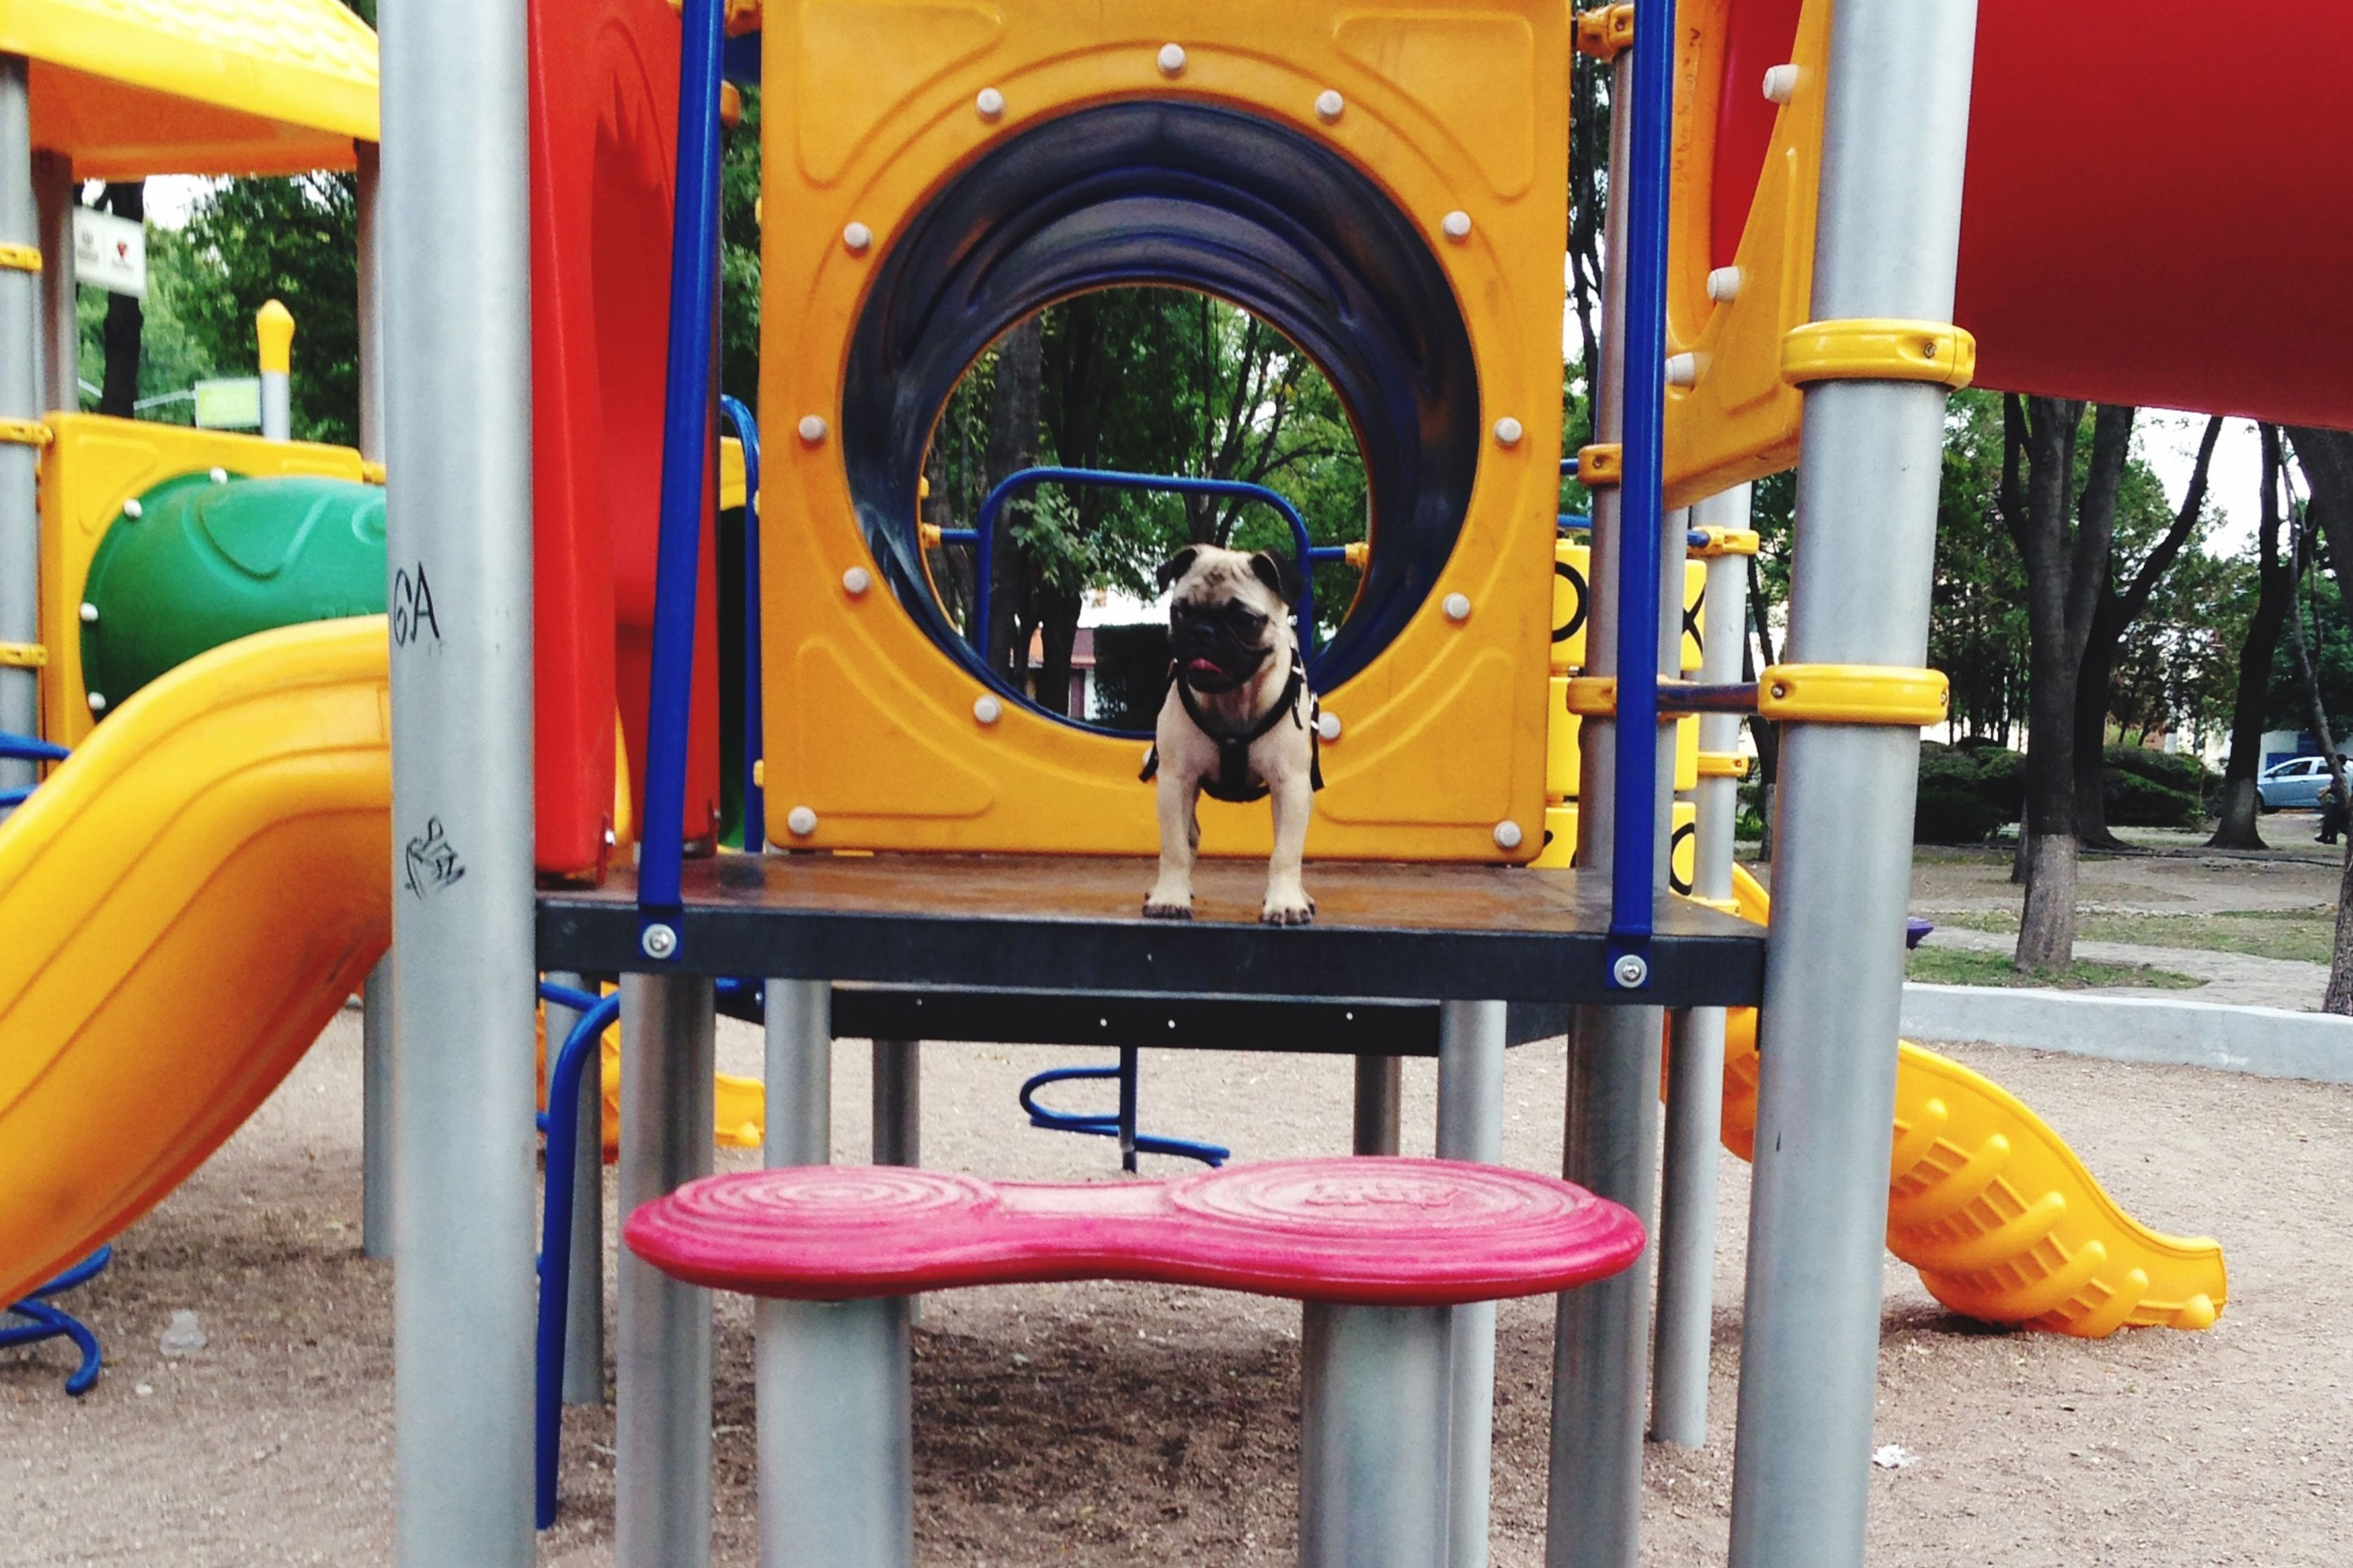 yellow, built structure, playground, red, architecture, arch, tree, day, park - man made space, slide - play equipment, architectural column, childhood, metal, outdoors, orange color, sunlight, chair, protection, multi colored, gate